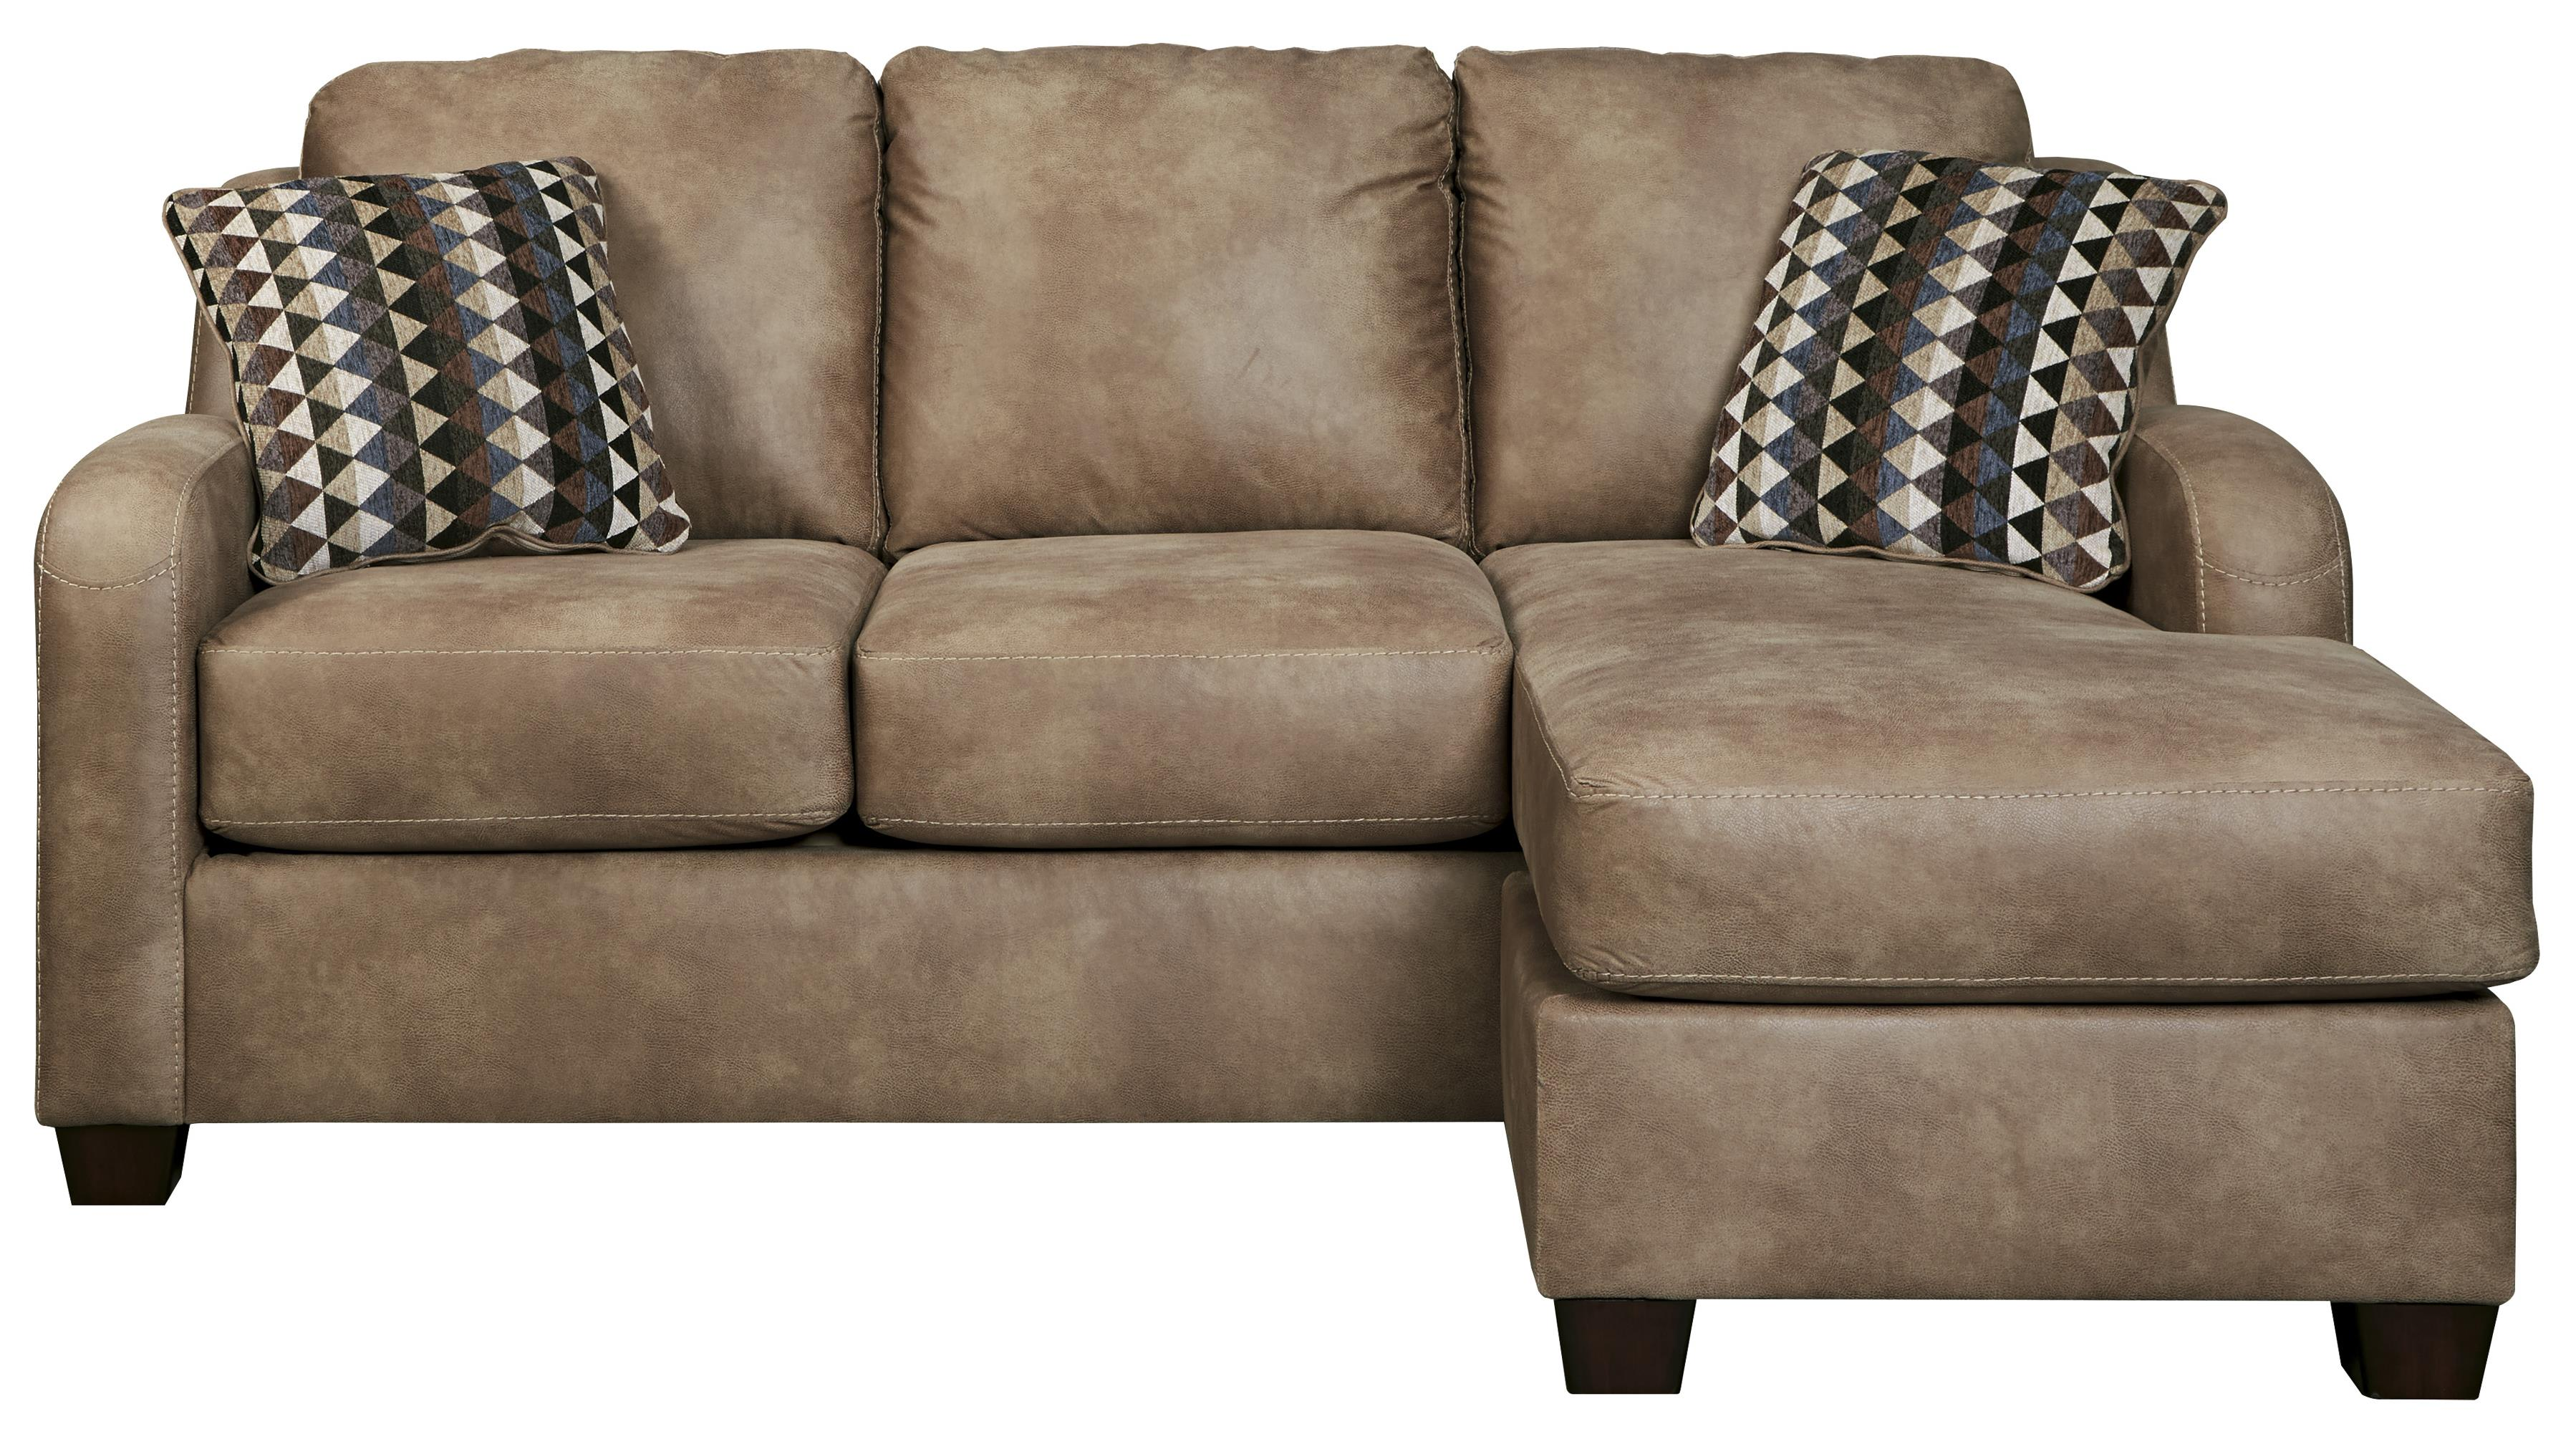 Benchcraft Alturo 6000368 Queen Sofa Chaise Sleeper With